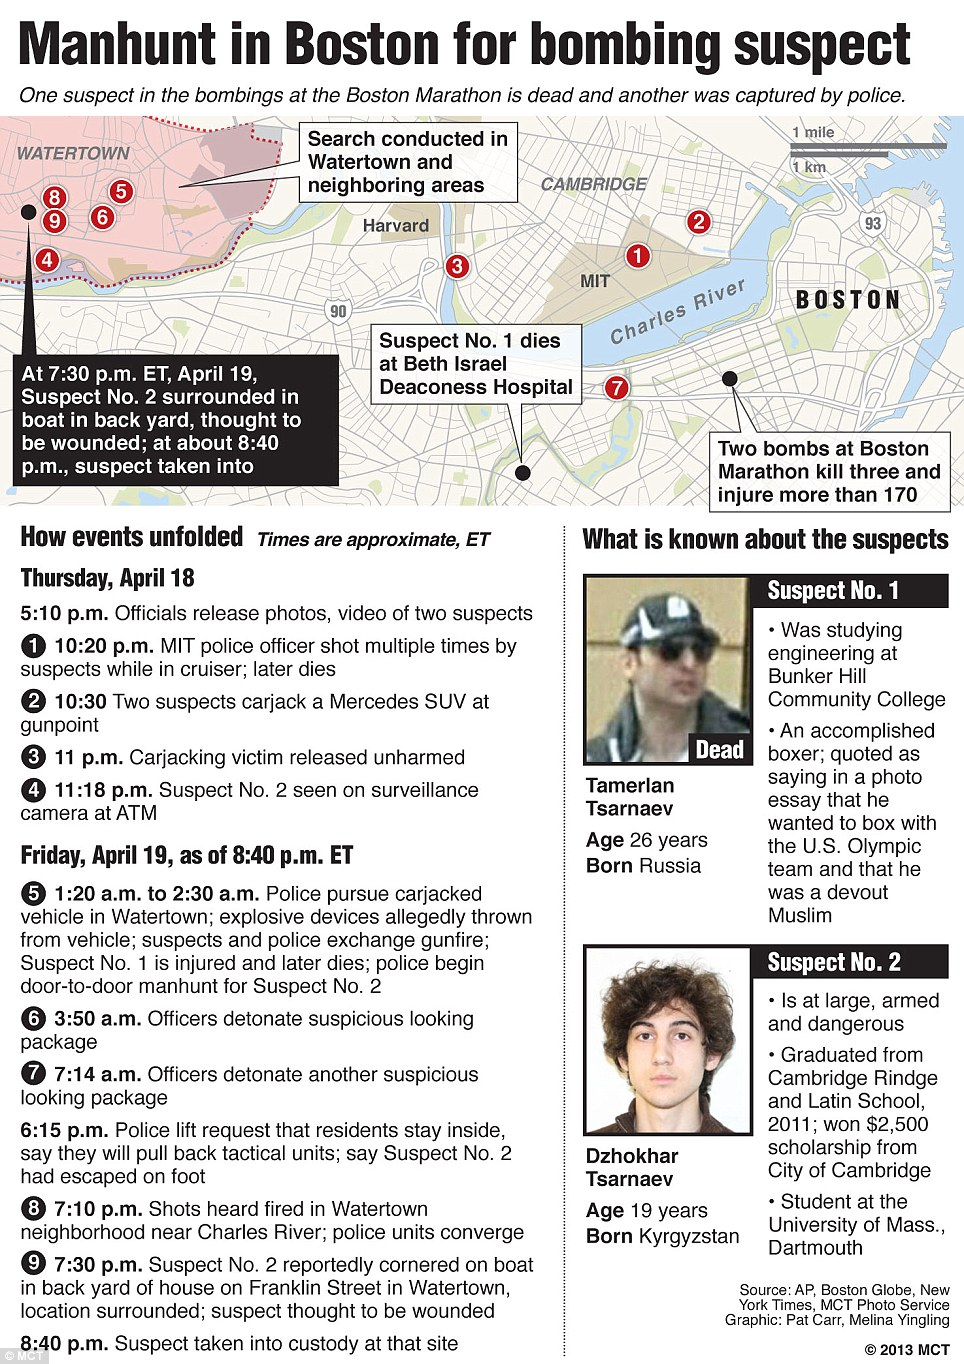 This map shows the location of incidents surrounding the manhunt for the two Boston Marathon bombings suspects and includes an updated timeline of events and information on the Tsarnaev brothers